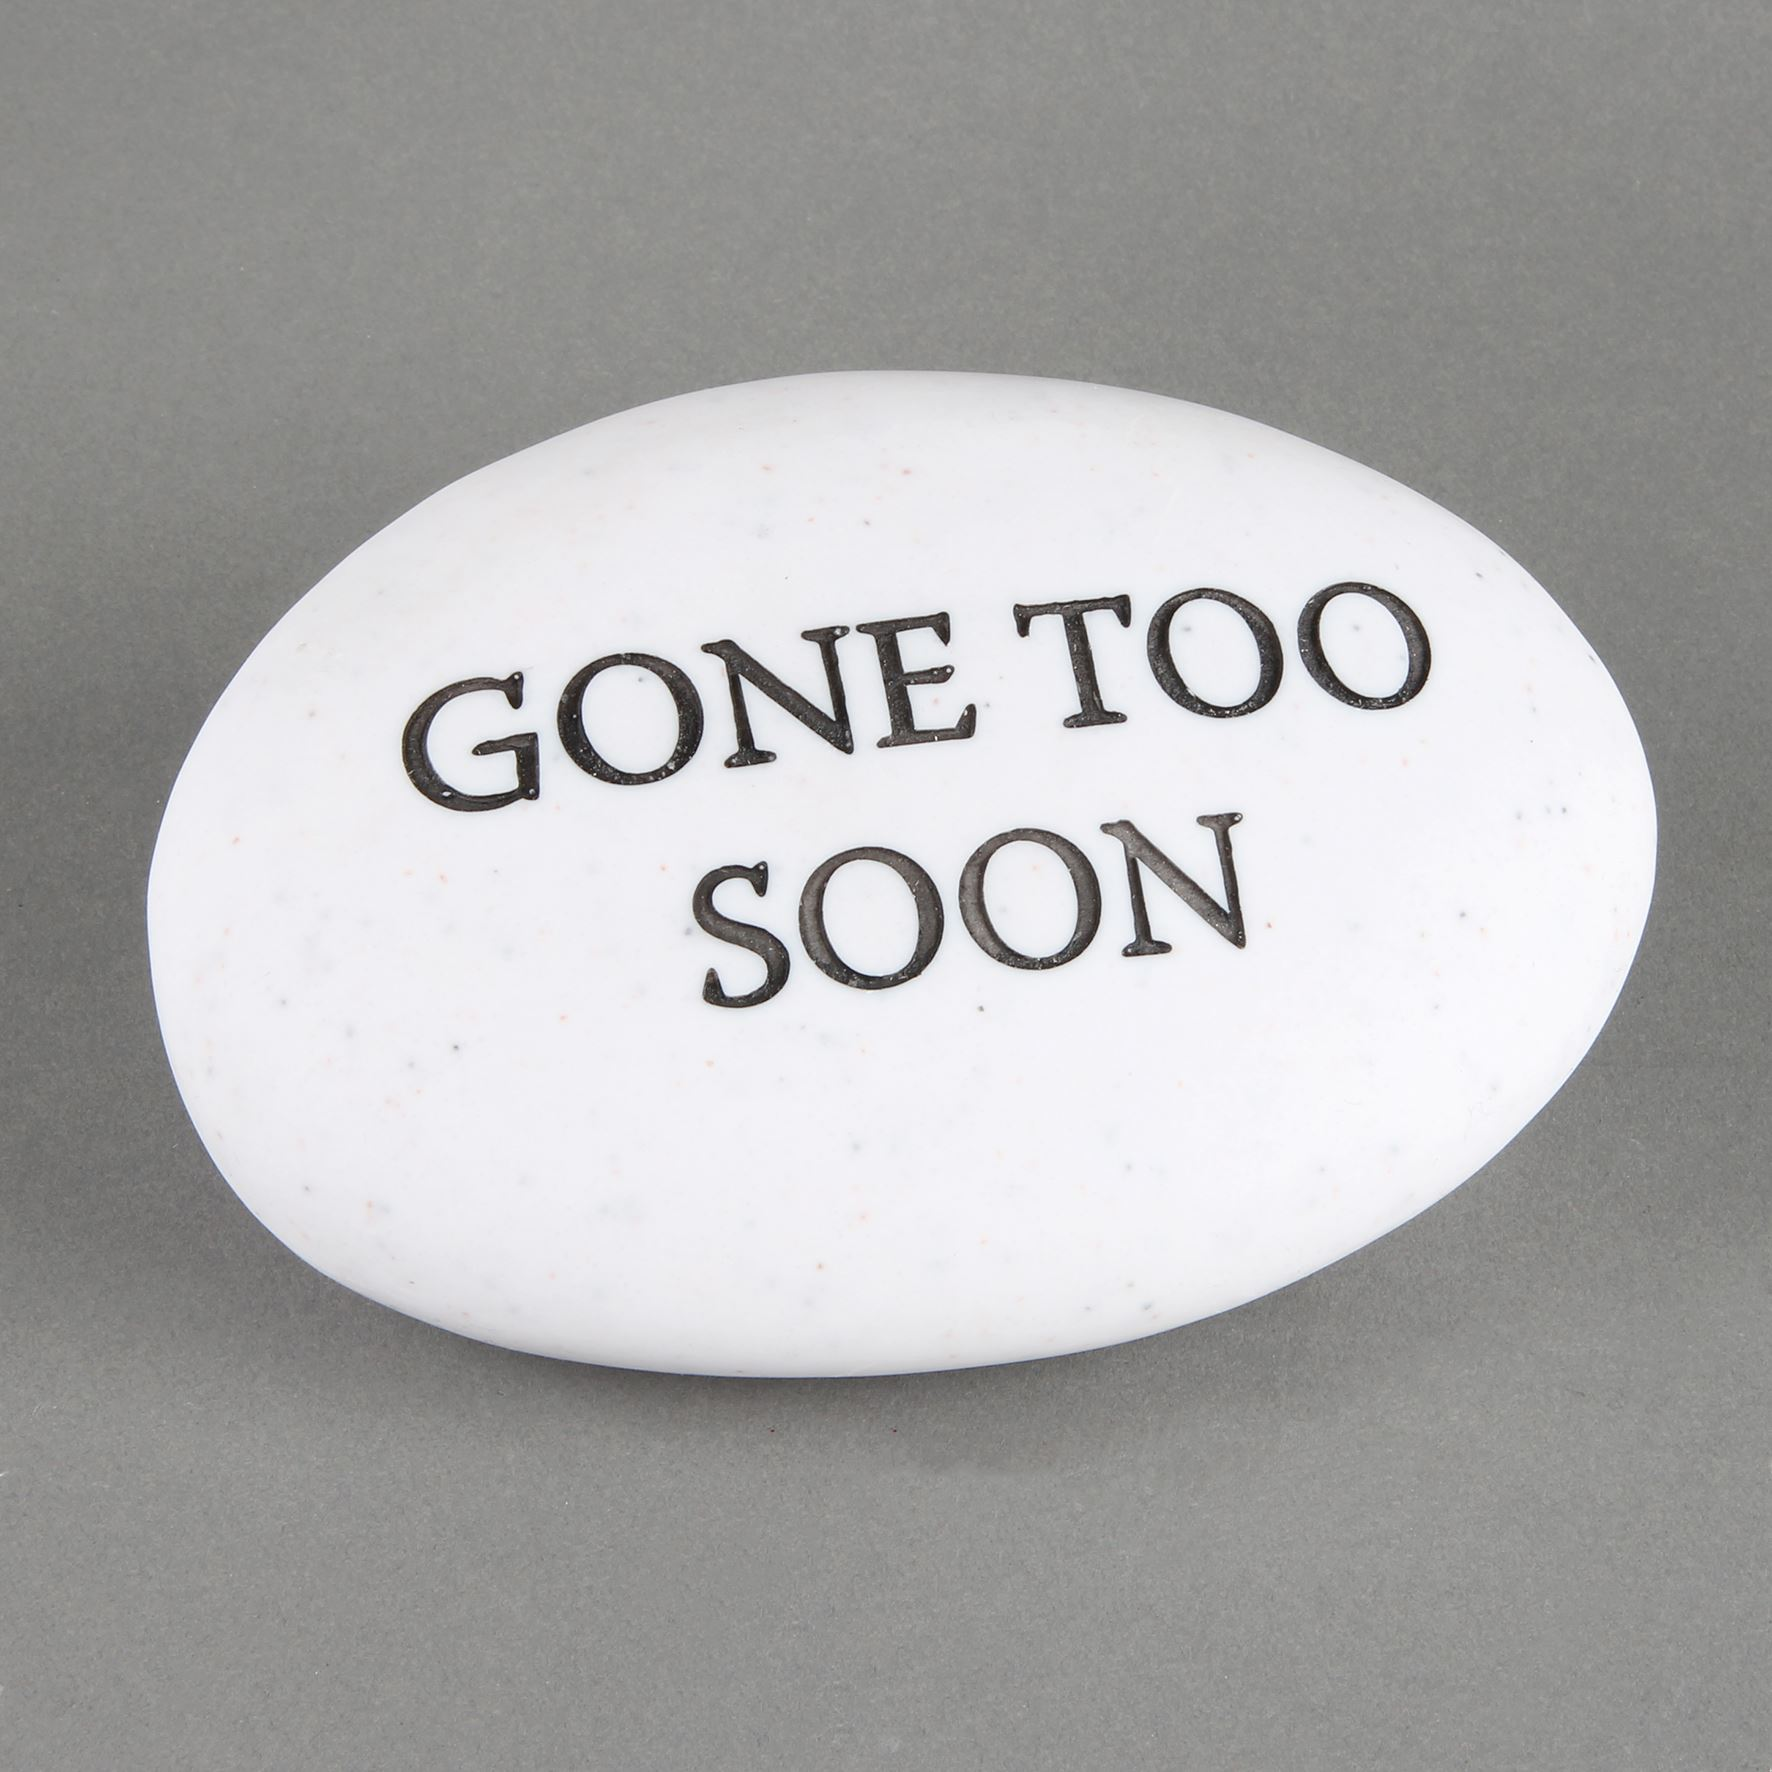 Thoughts of You Memorial Pebble - Gone Too Soon